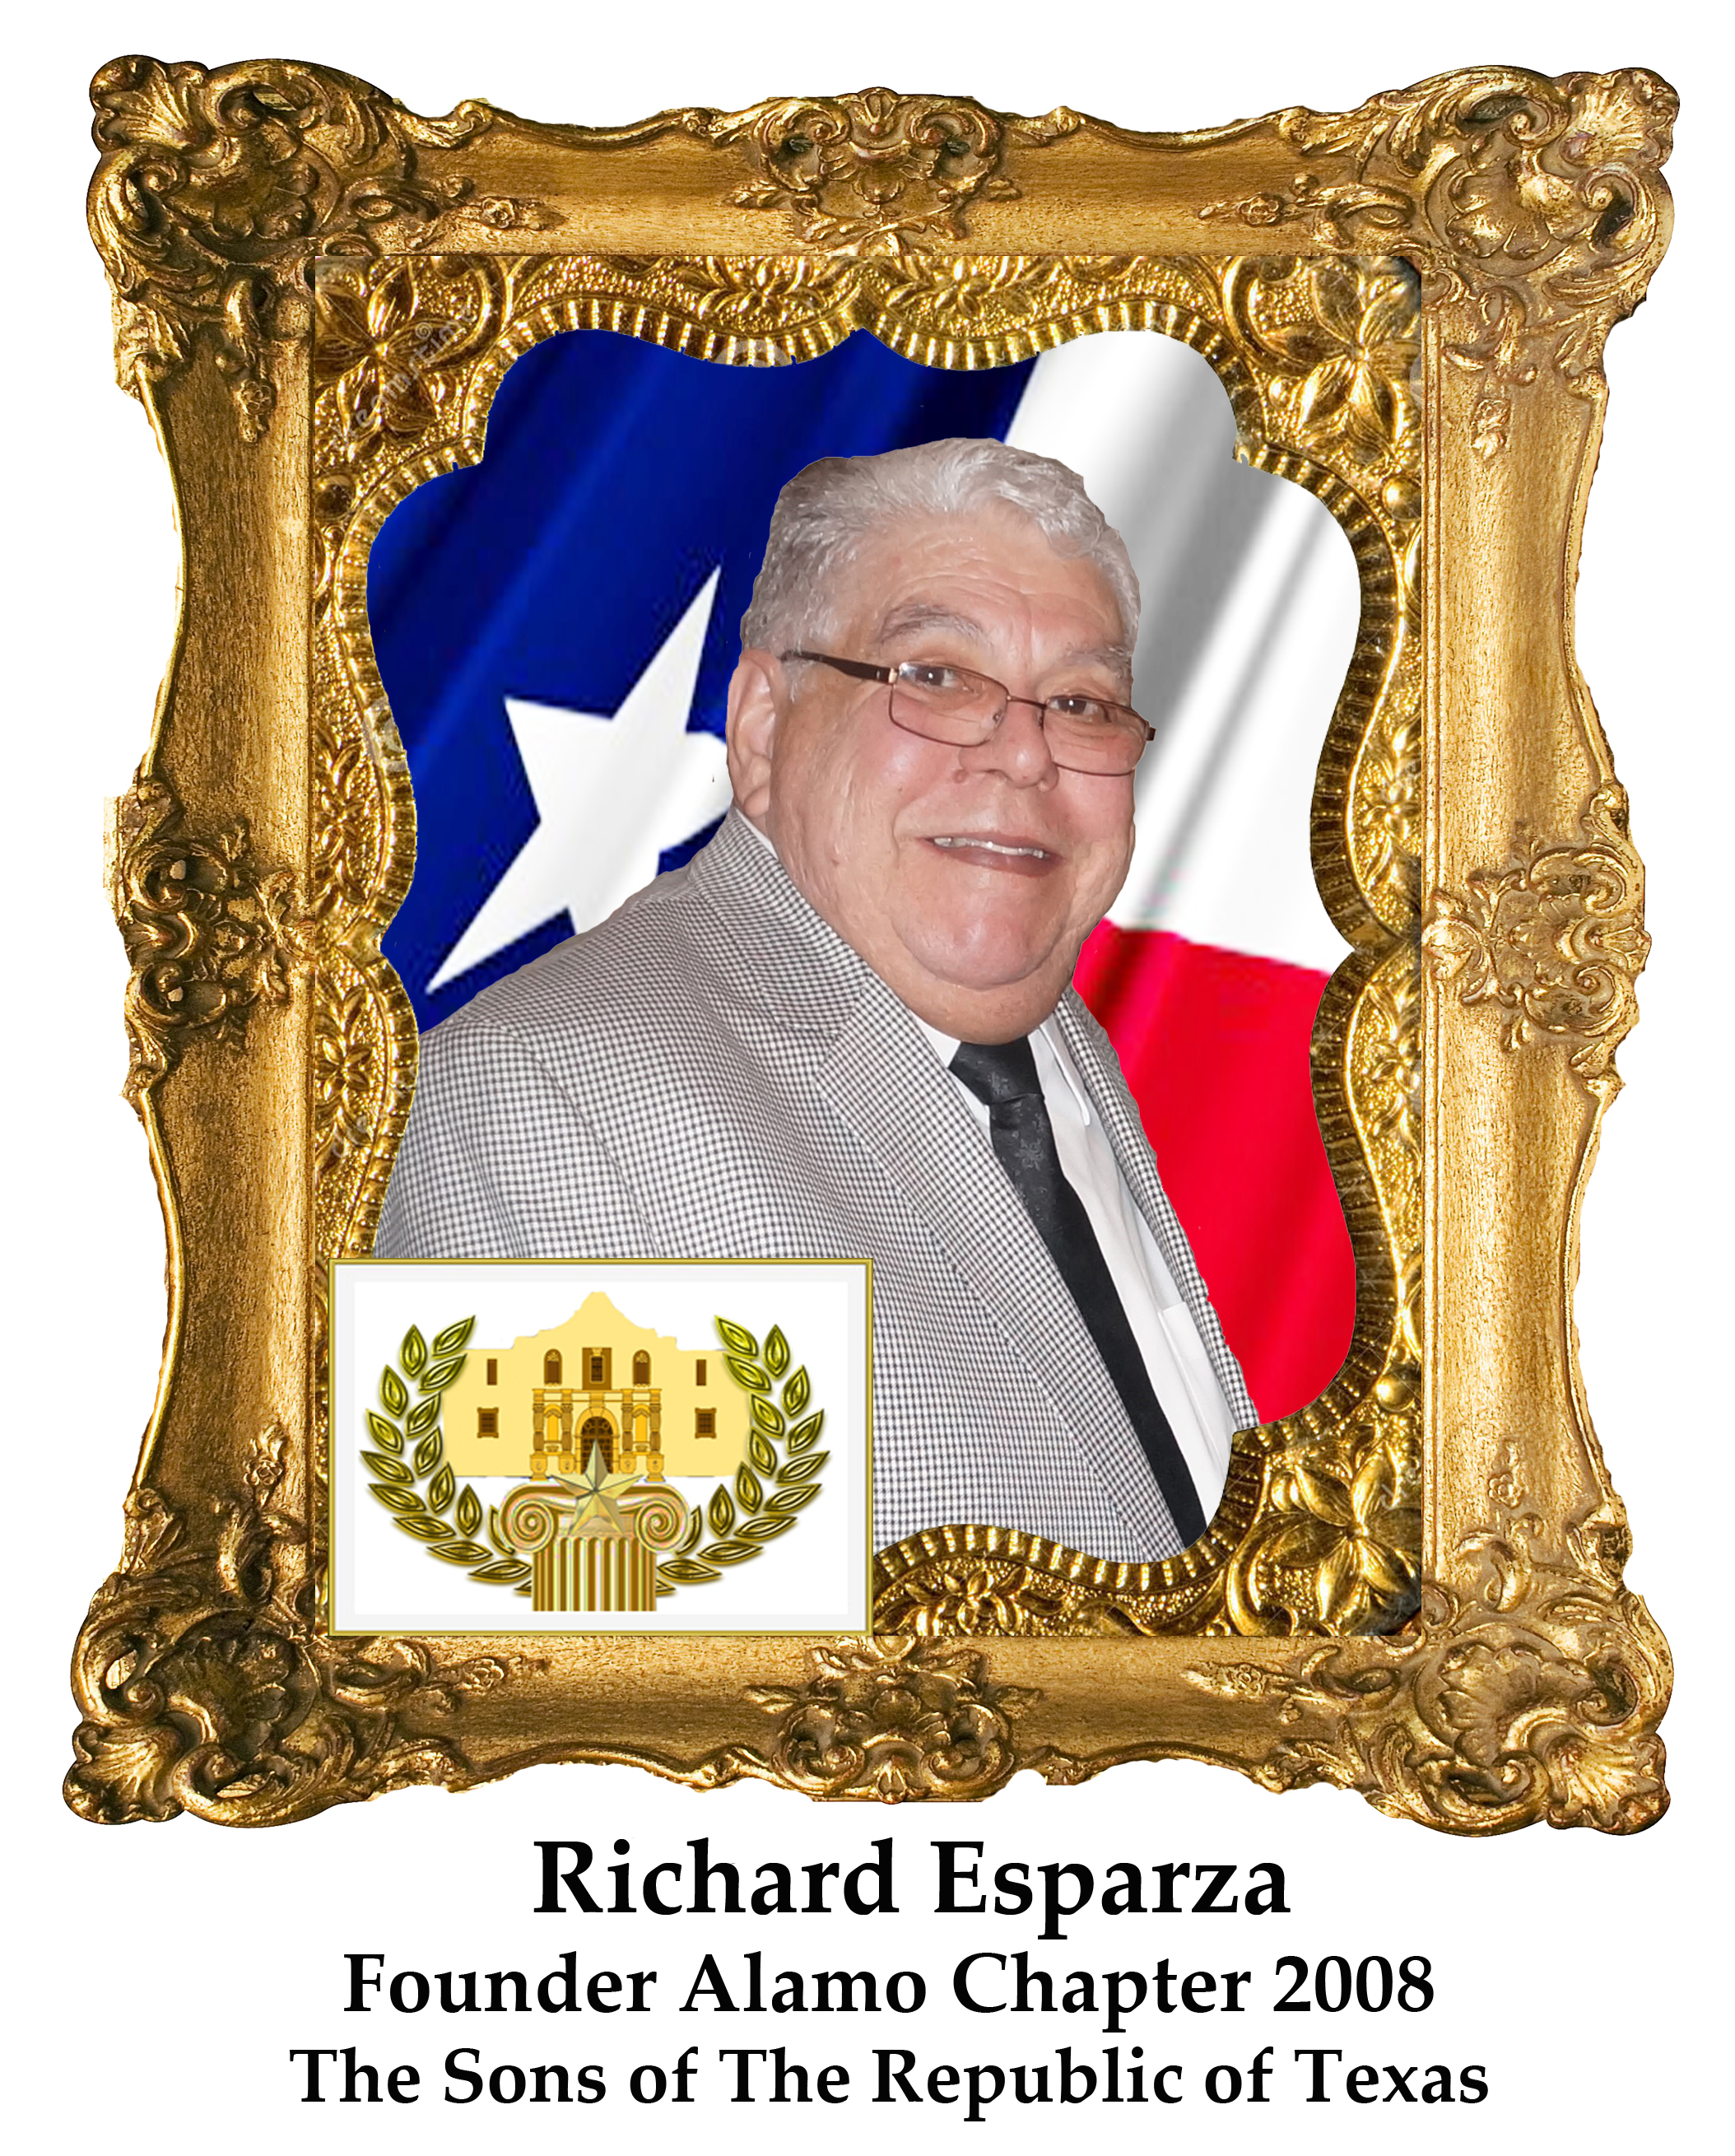 Richard Esparza.jpg